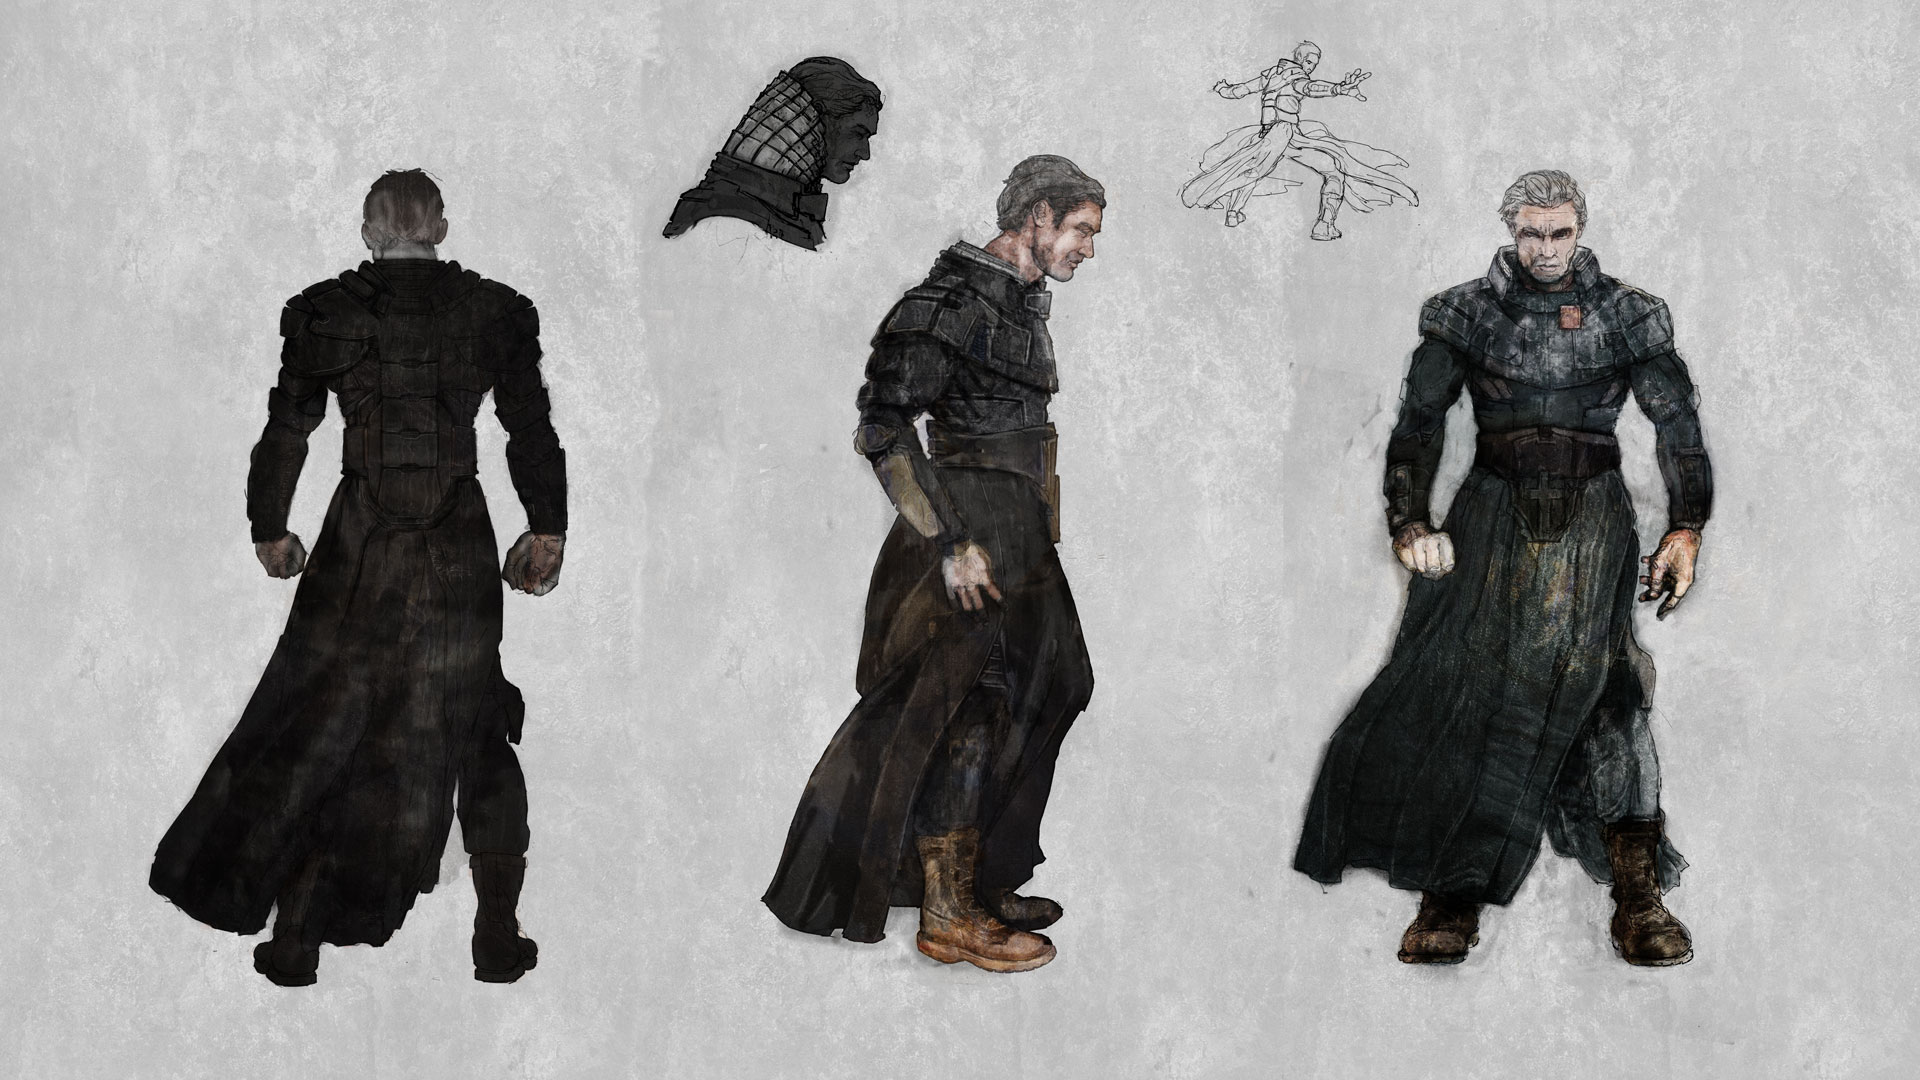 Costume Design Character Analysis : Wip character costume what do you think